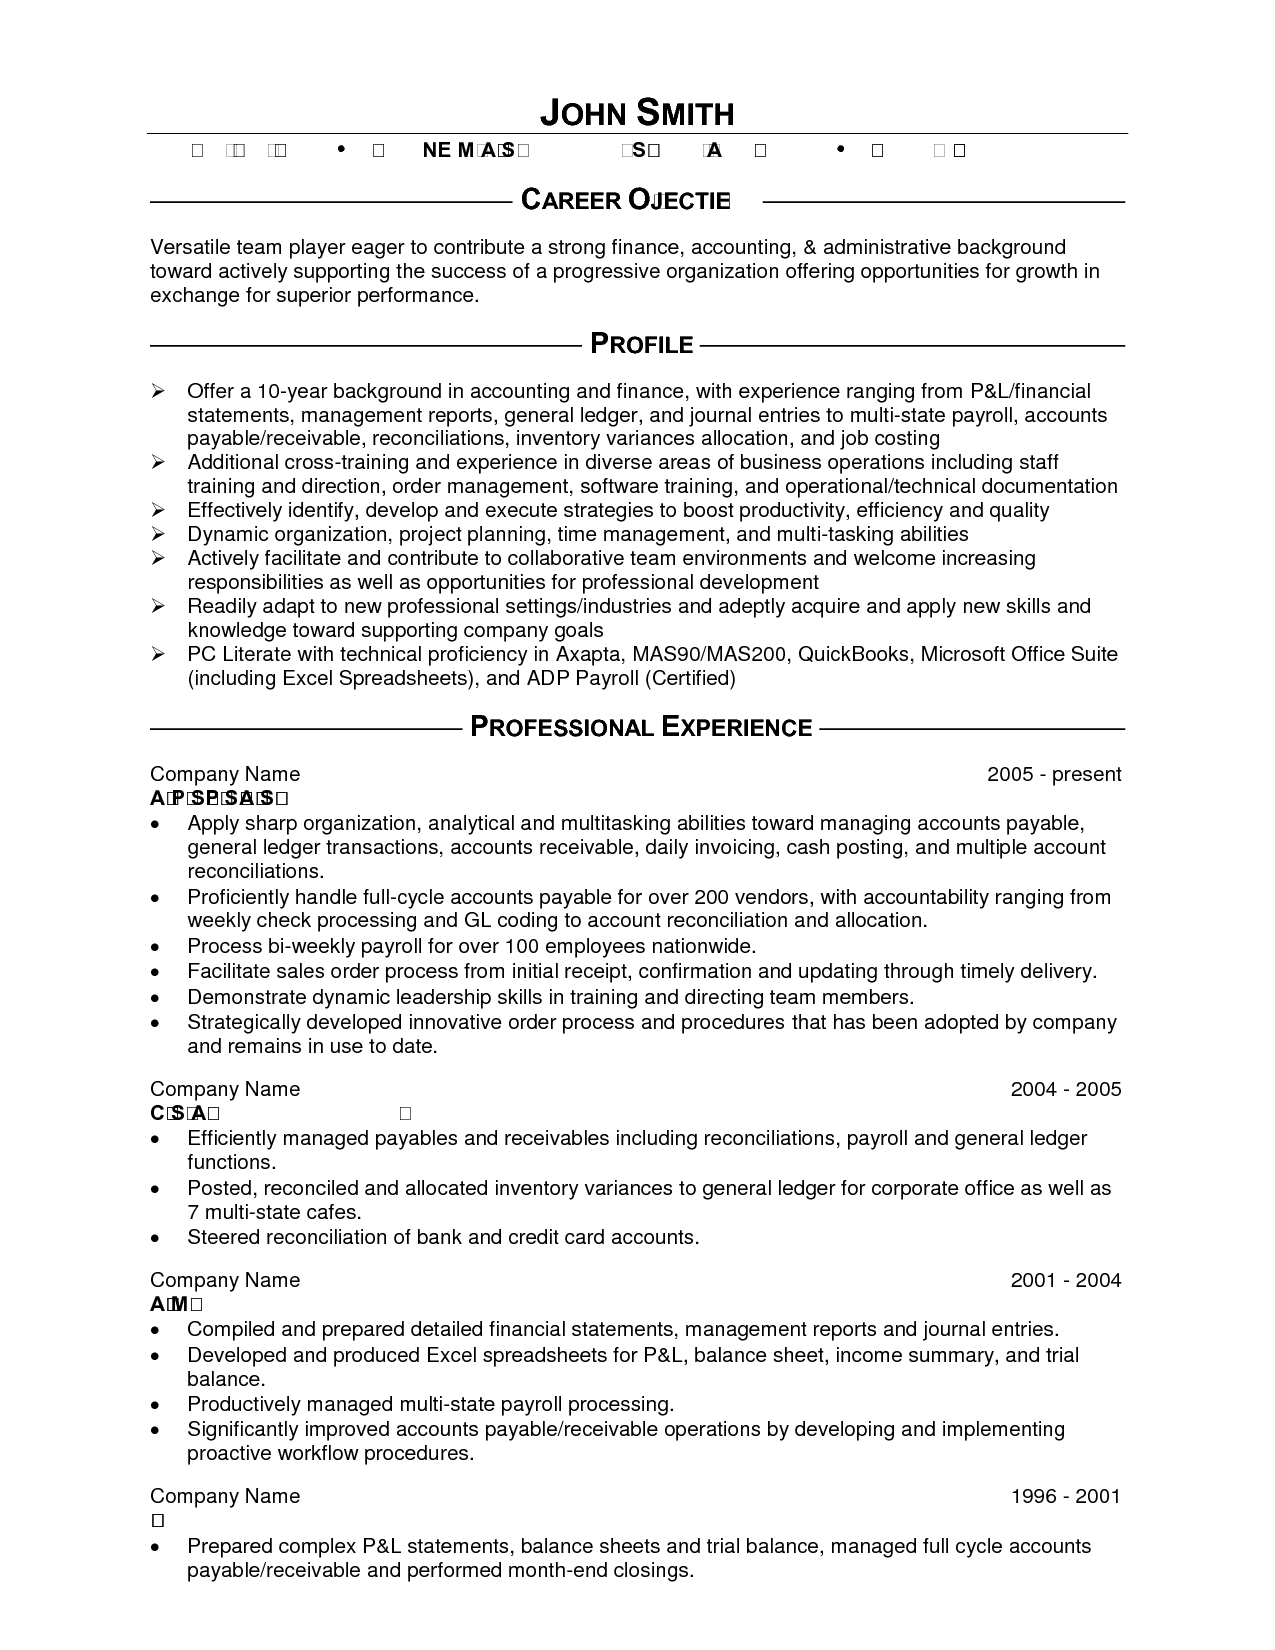 resume sample of accounting clerk position job search · resume sample of accounting